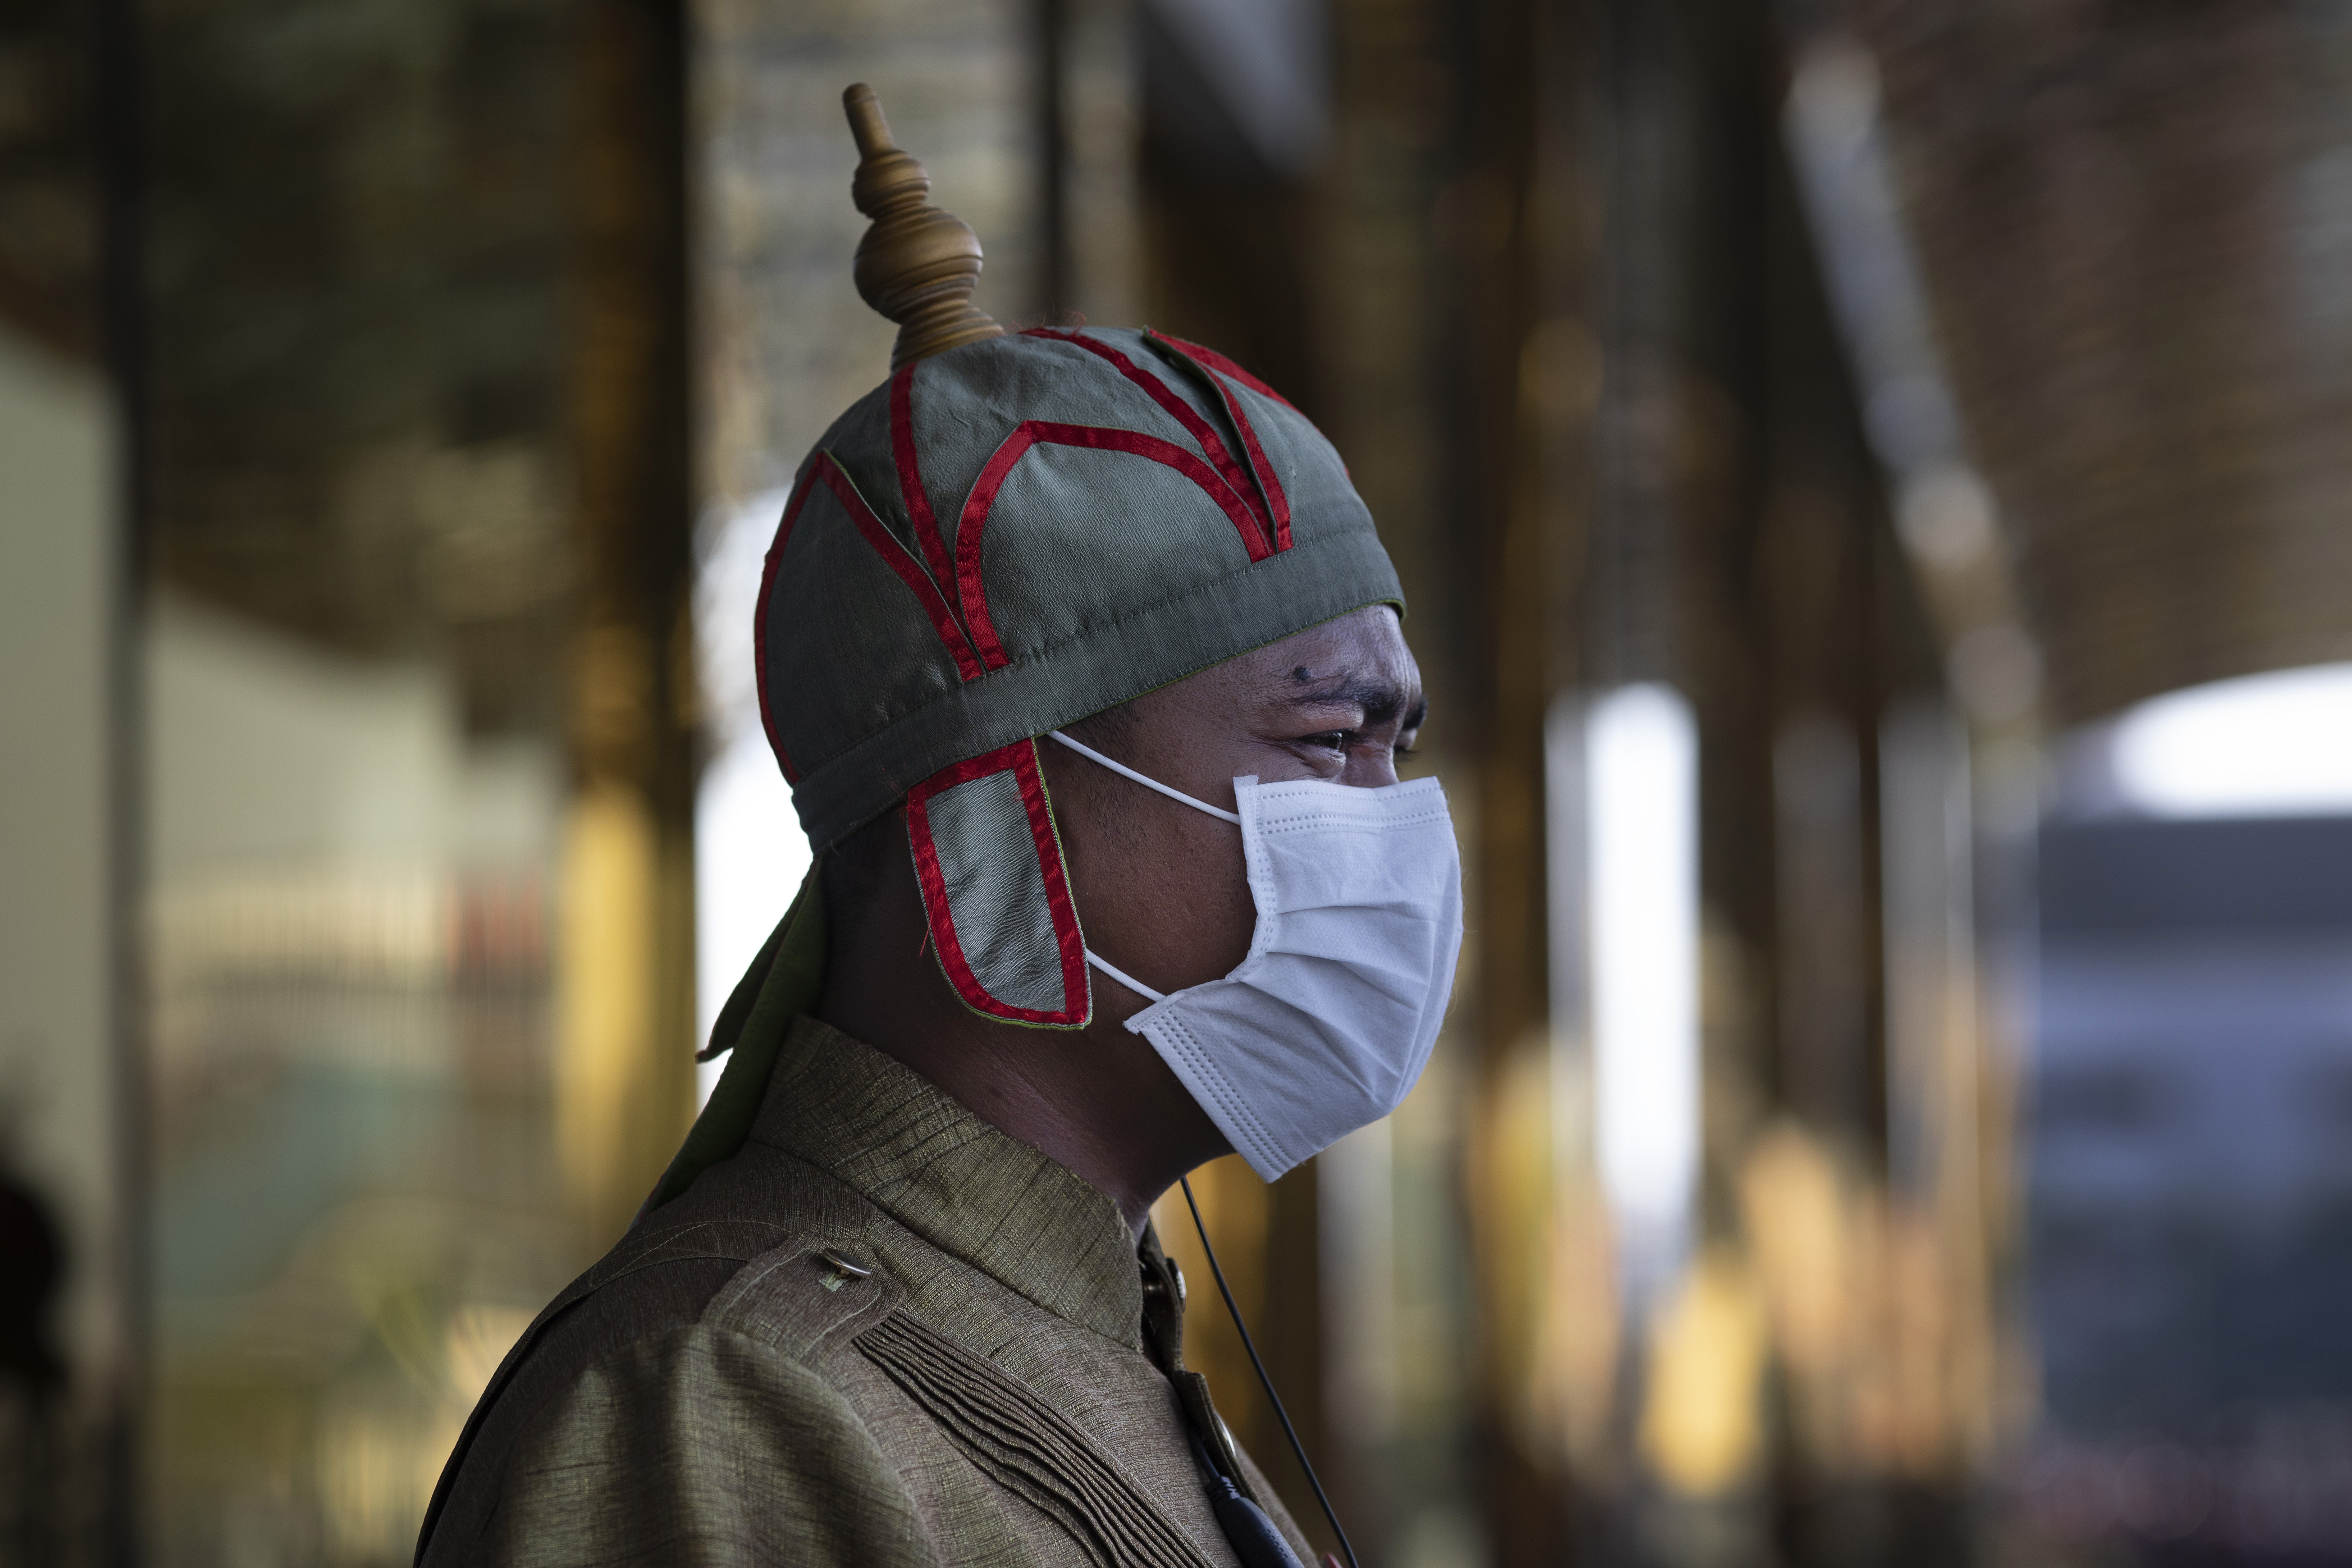 A Cambodian hotel guard wearing a mask stands outside a hotel in Phnom Penh, Cambodia.